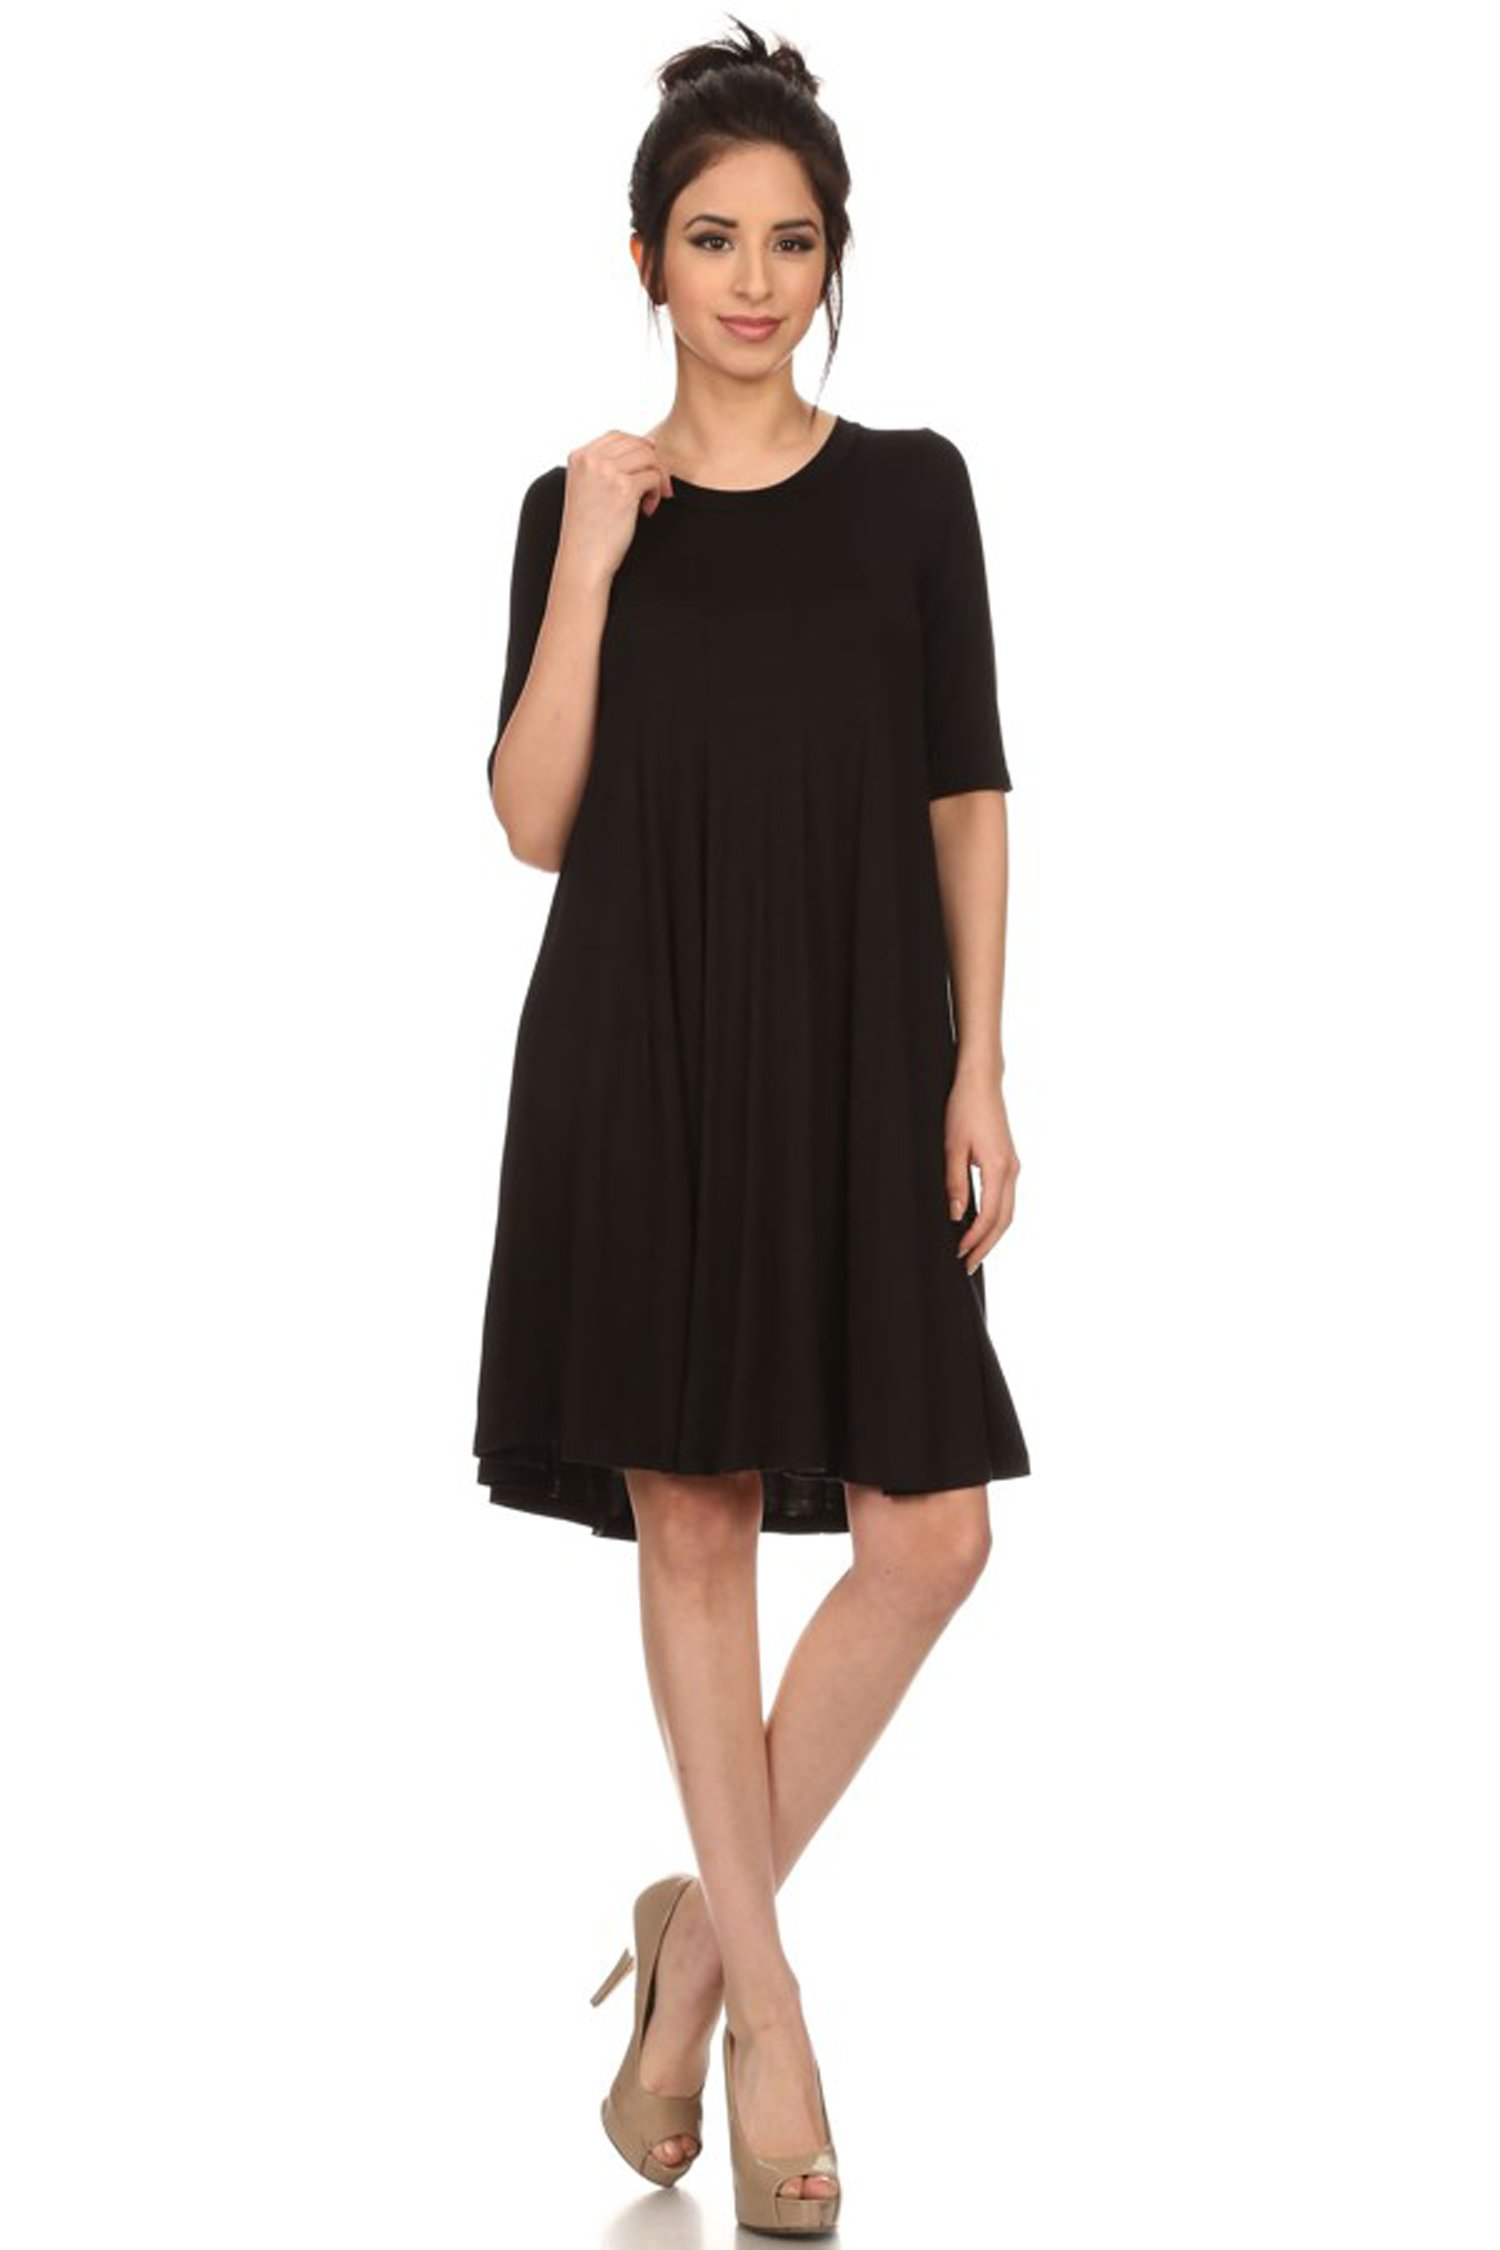 Casual half Sleeve Loose Fit T-Shirt Solid Dress/Made in USA Black XL